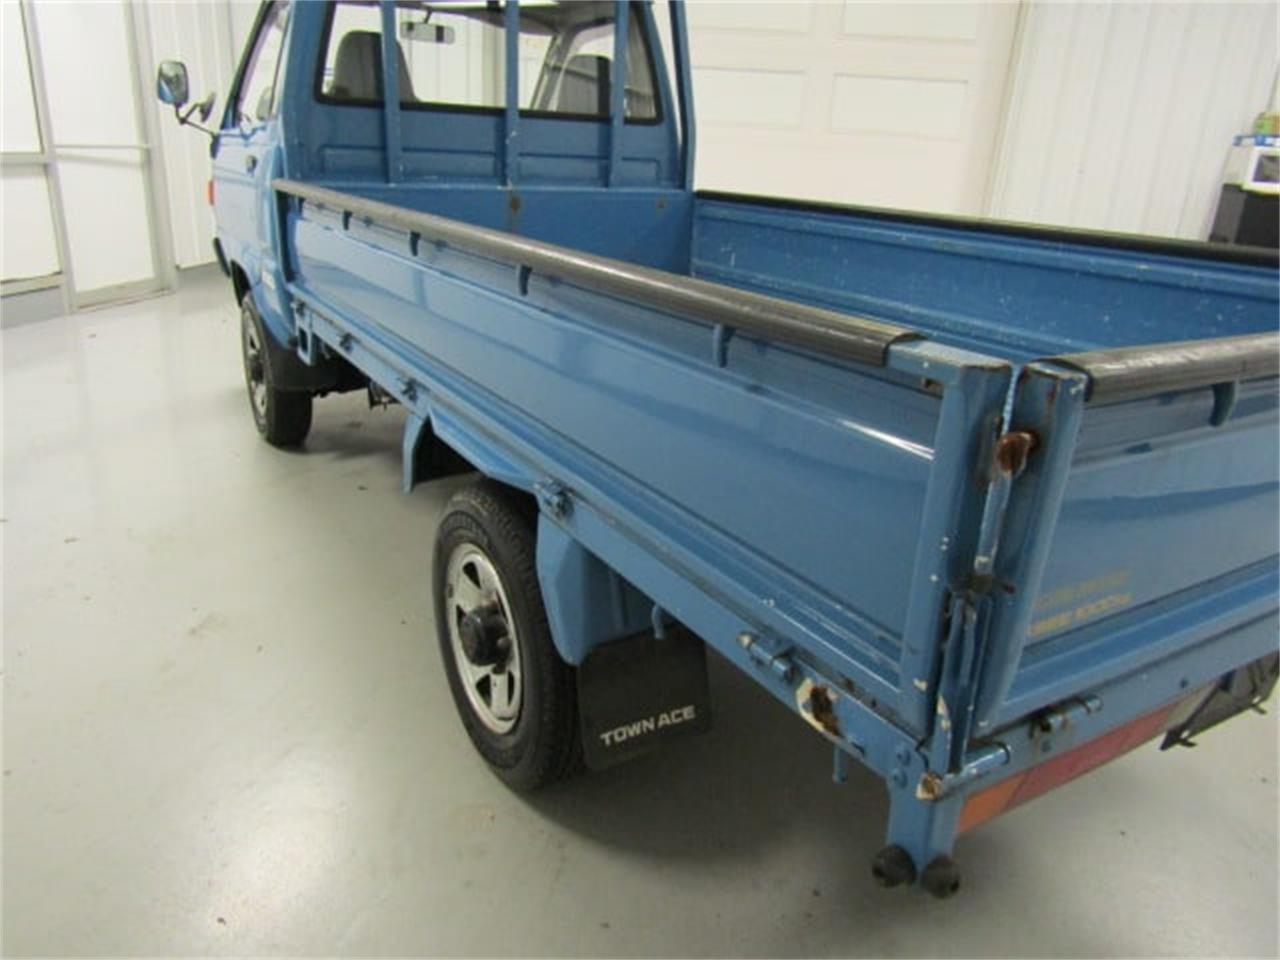 Large Picture of '88 TownAce - $8,900.00 - JM3S